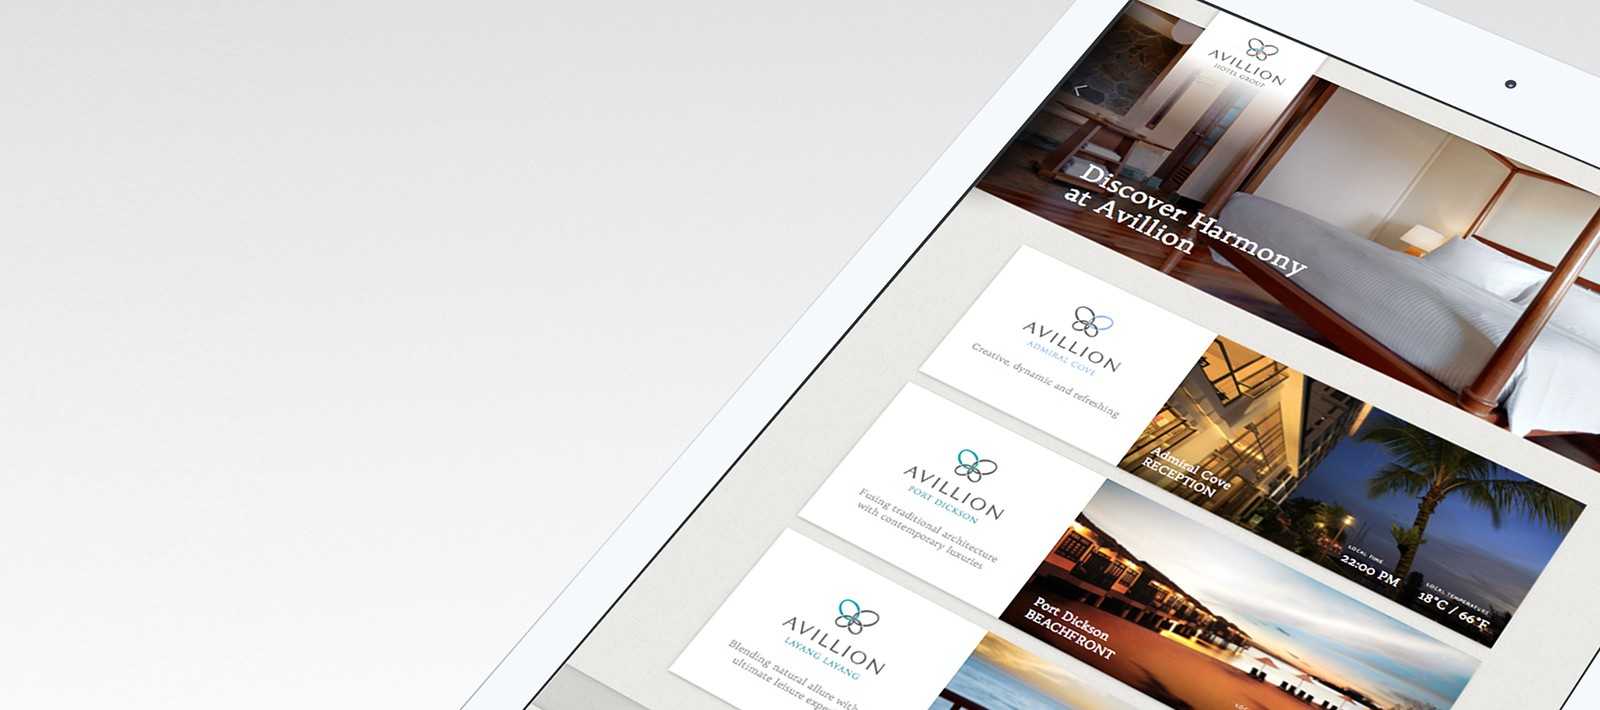 user interface design for hospitality